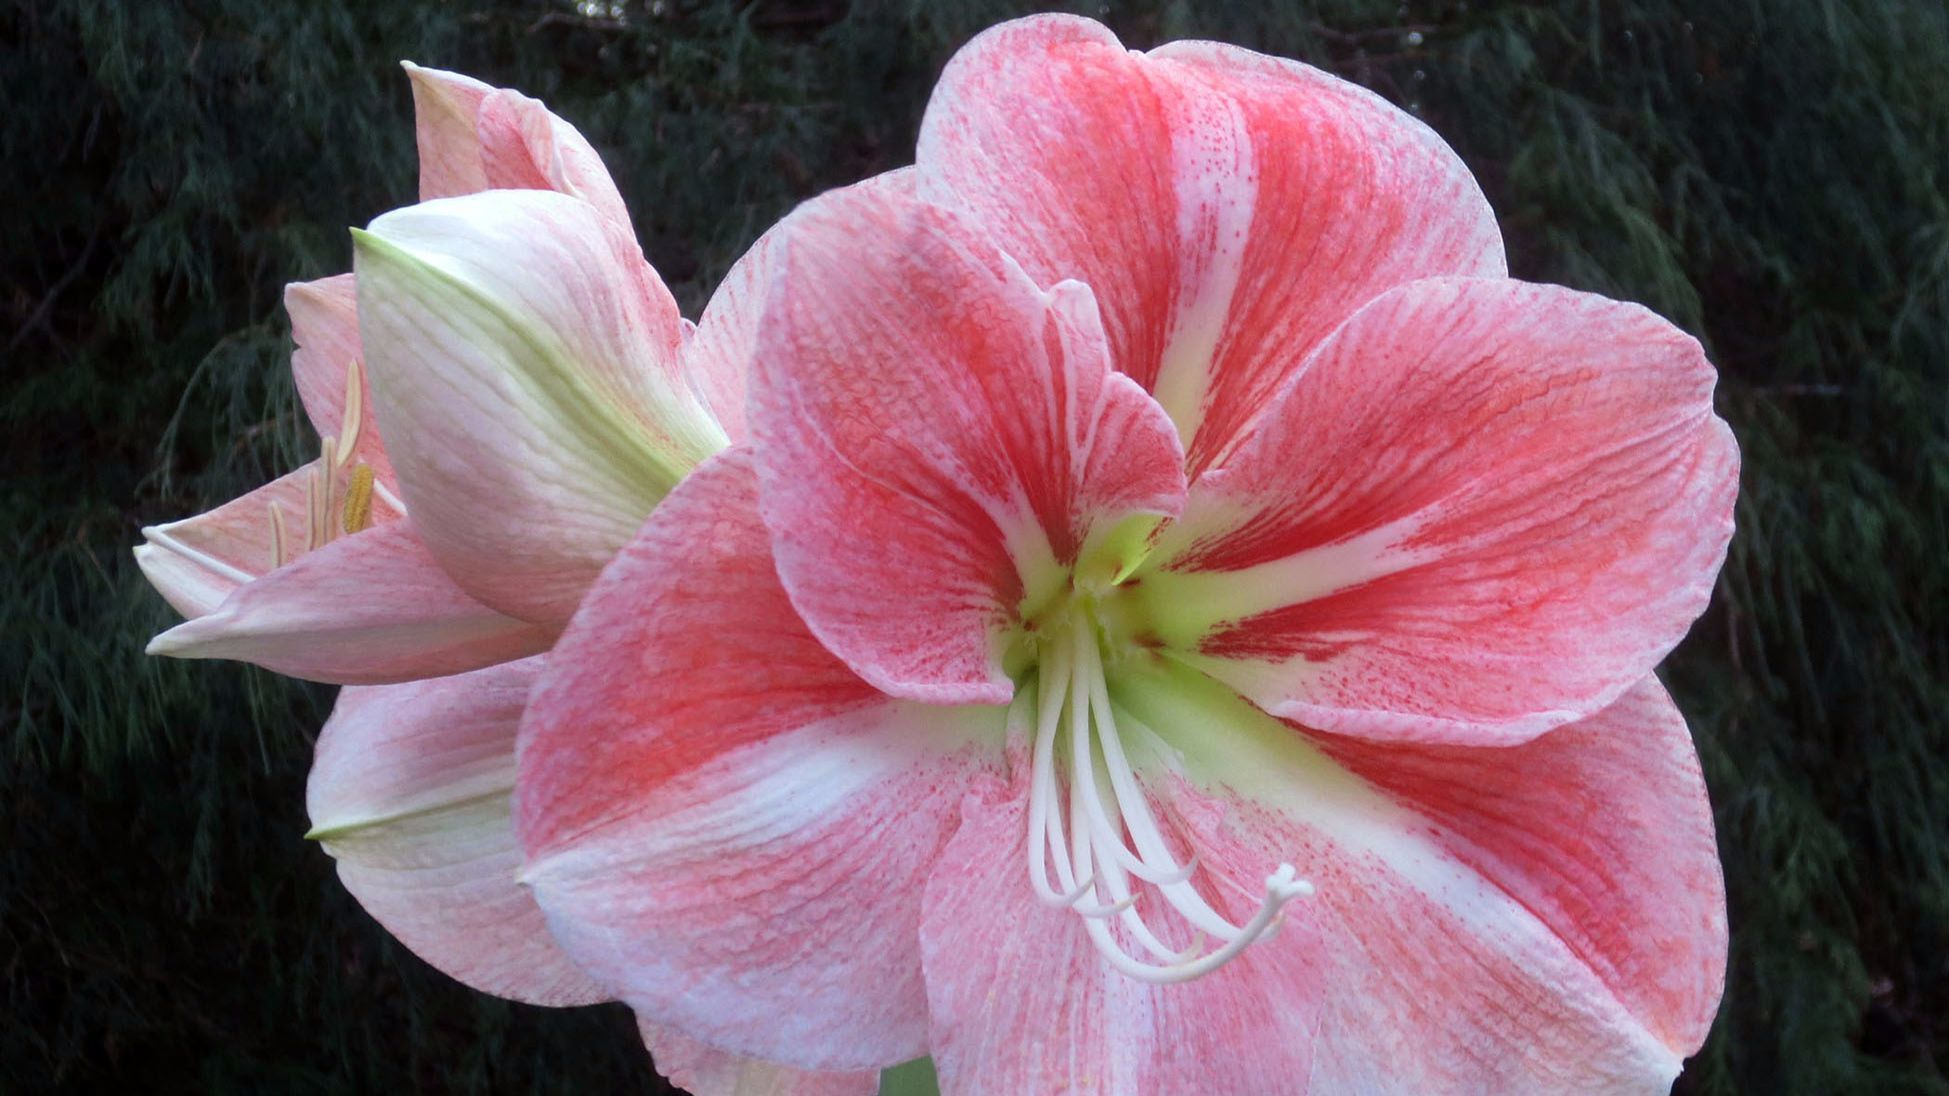 gardening do amaryllis bulbs ever bloom in the summer the